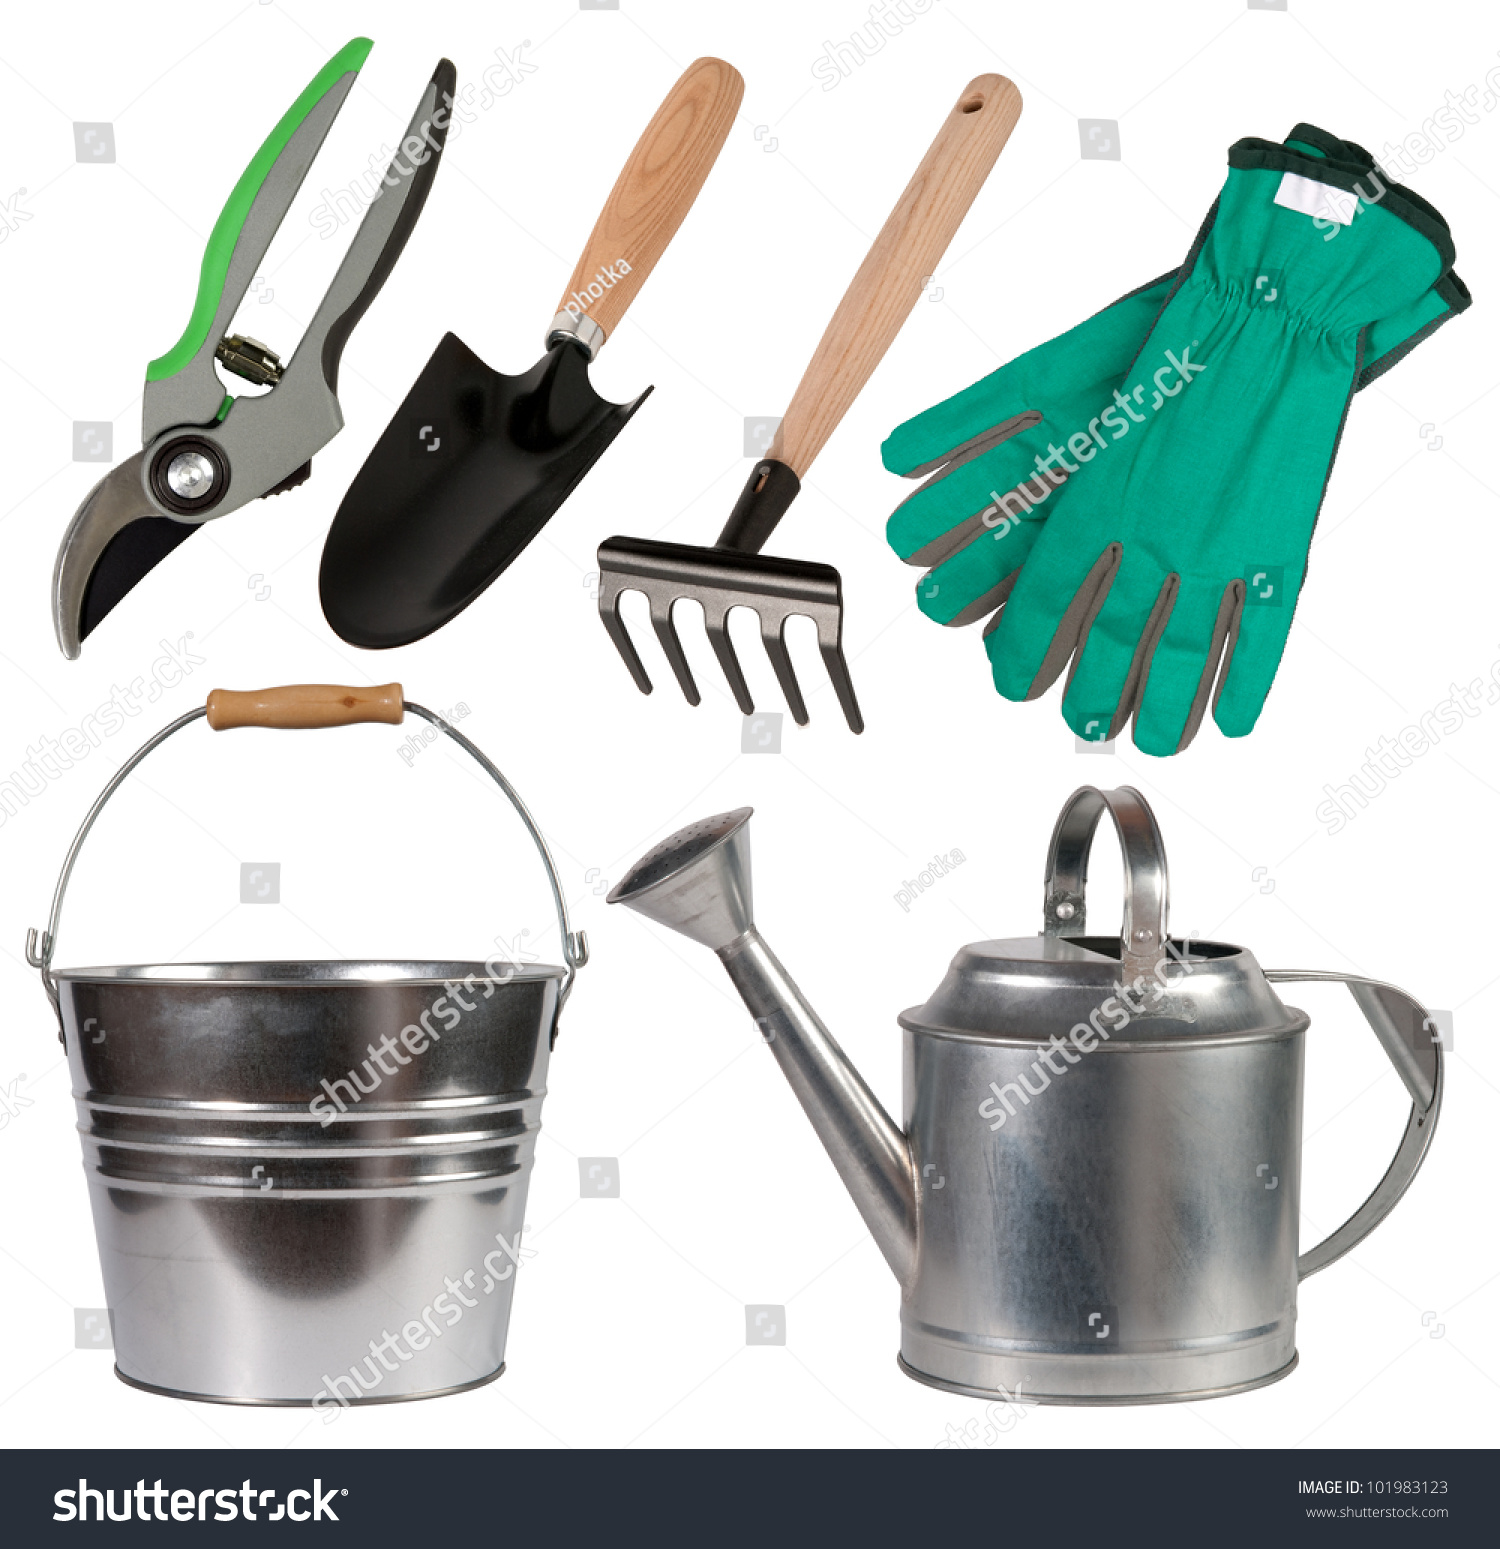 Gardening tools isolated on white background stock photo for Home and garden equipment